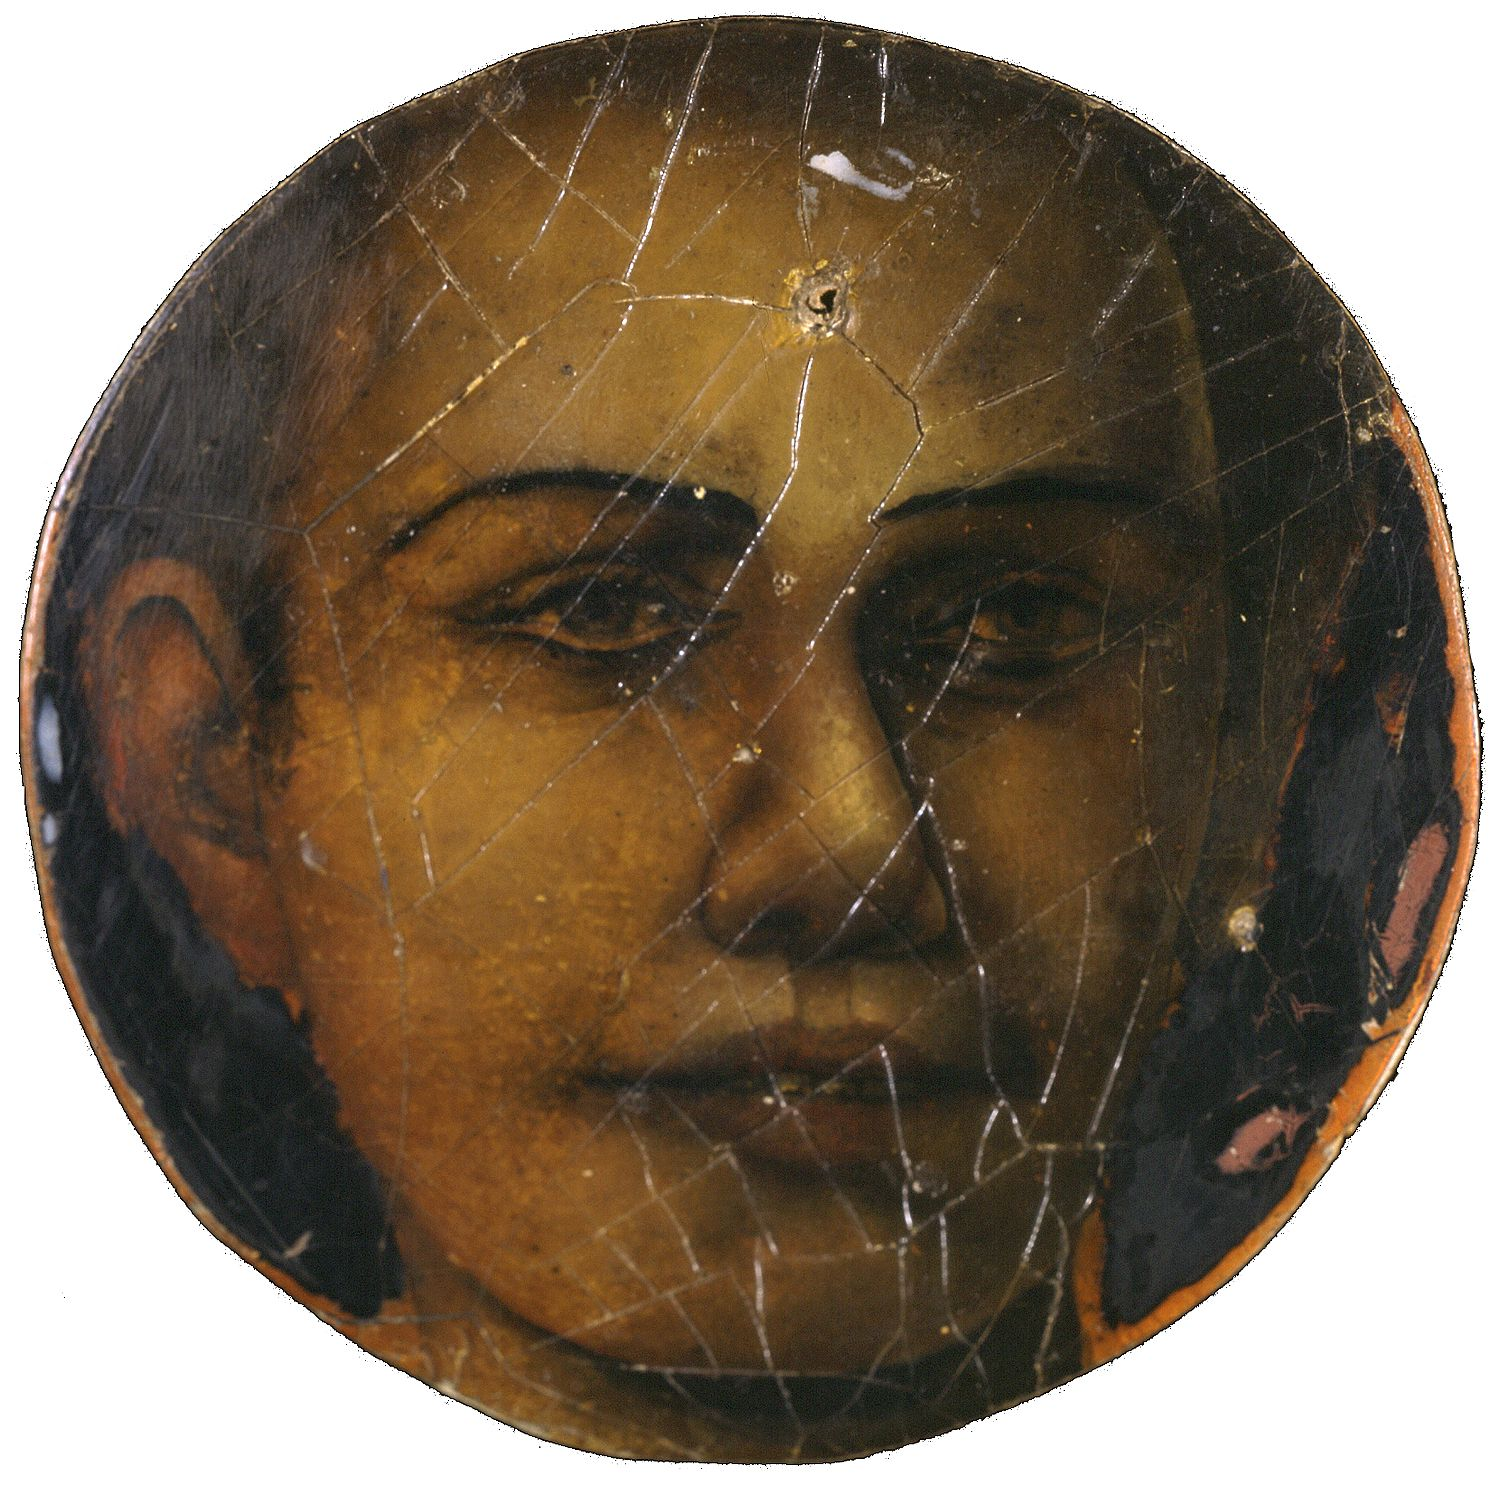 Gregory Gillespie, Untitled (face of boy in circle) (SOLD), c. 1968, mixed media, 10 x 10 inches